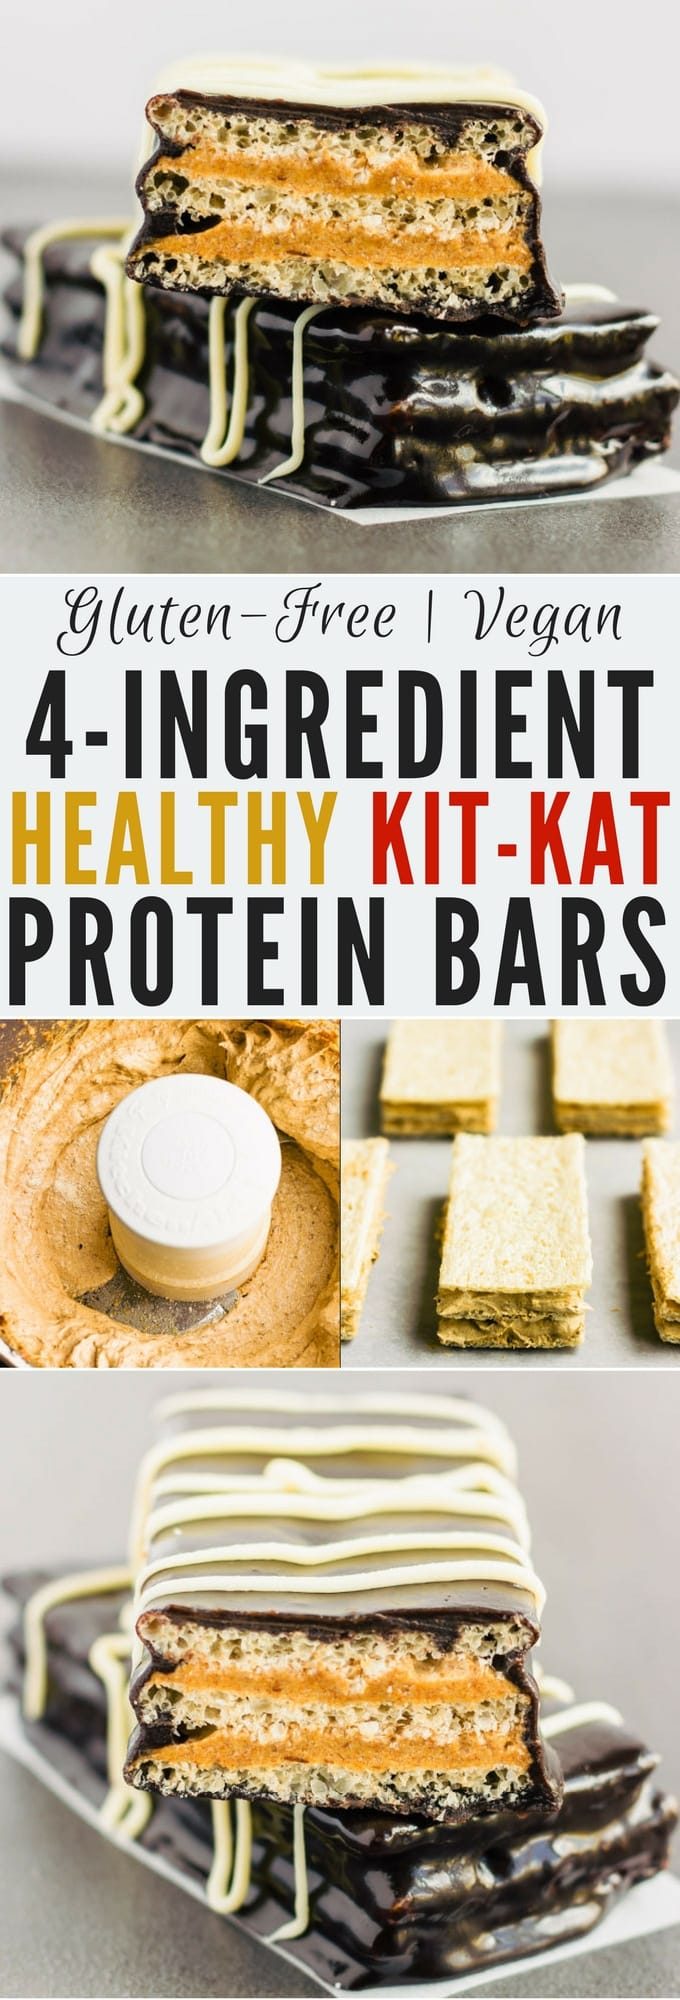 These healthy & homemade kit kat protein bars are easy to make and require only 4 simple ingredients. These extra crunchy, no-bake protein treats are the perfect post-workout snack. They are entirely gluten-free, paleo, vegan, dairy-free, egg-free, flourless and nut-free. | www.onecleverchef.com